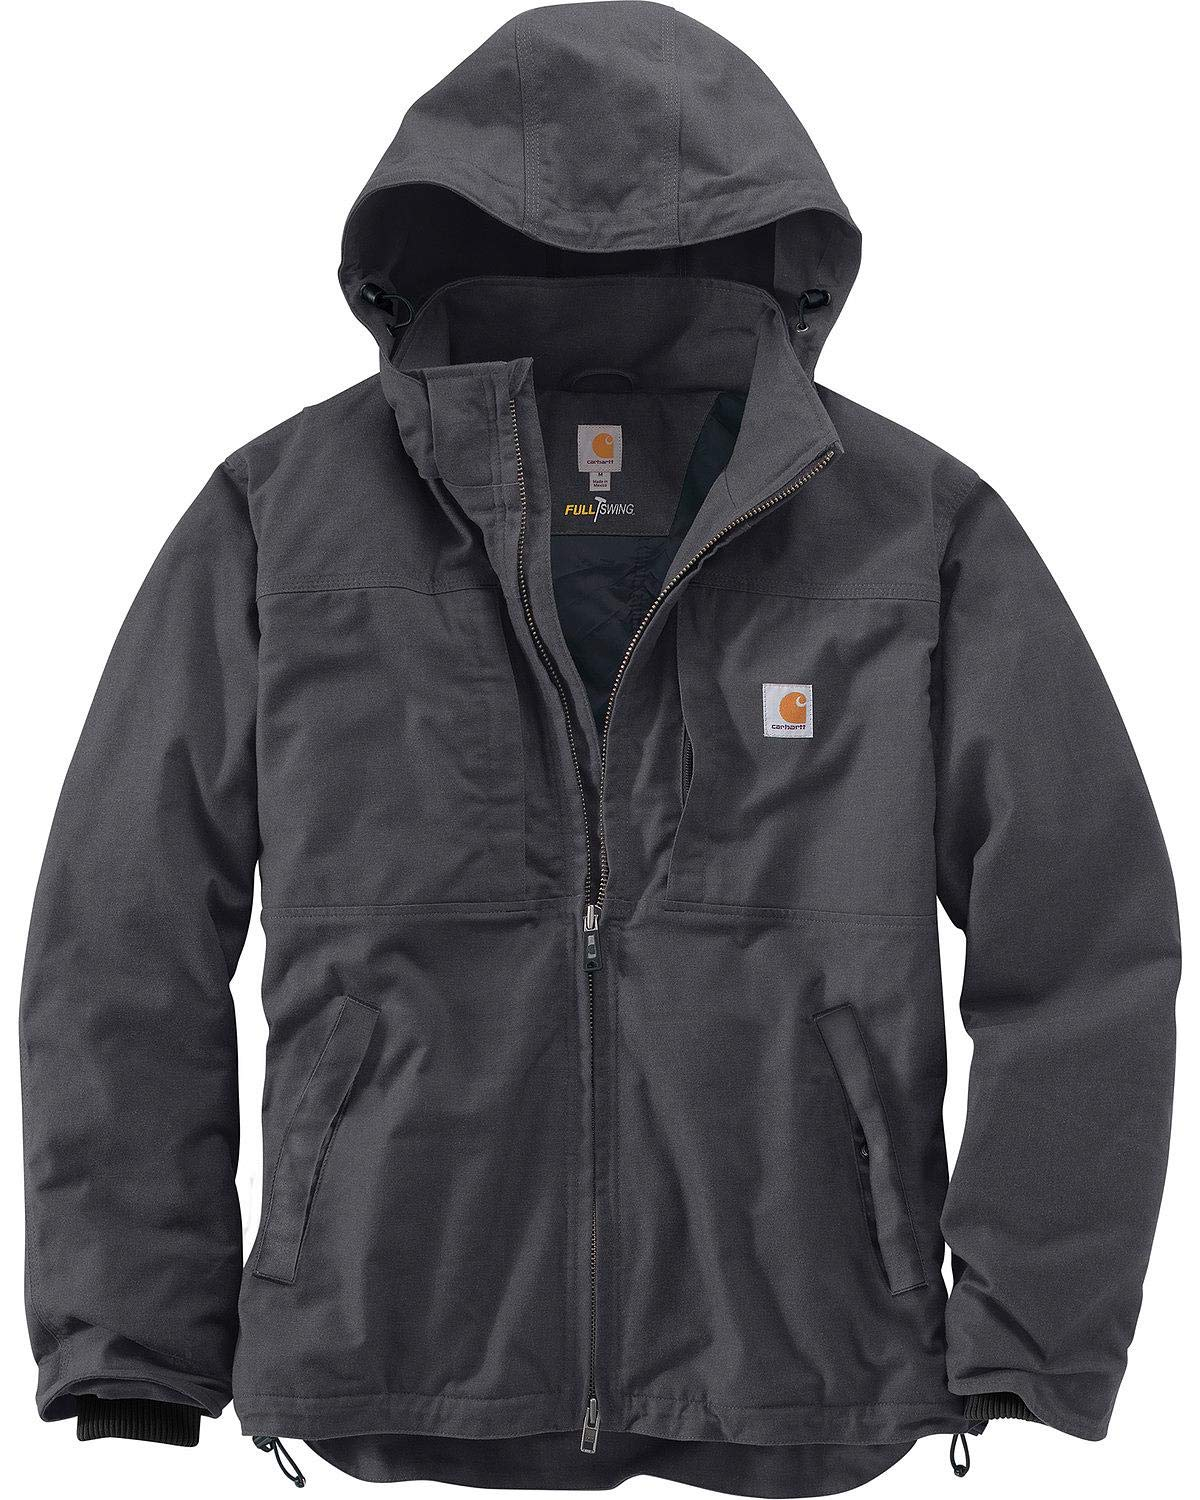 Carhartt Men's Big & Tall Full Swing Cryder Jacket, Shadow, X-Large/Tall by Carhartt